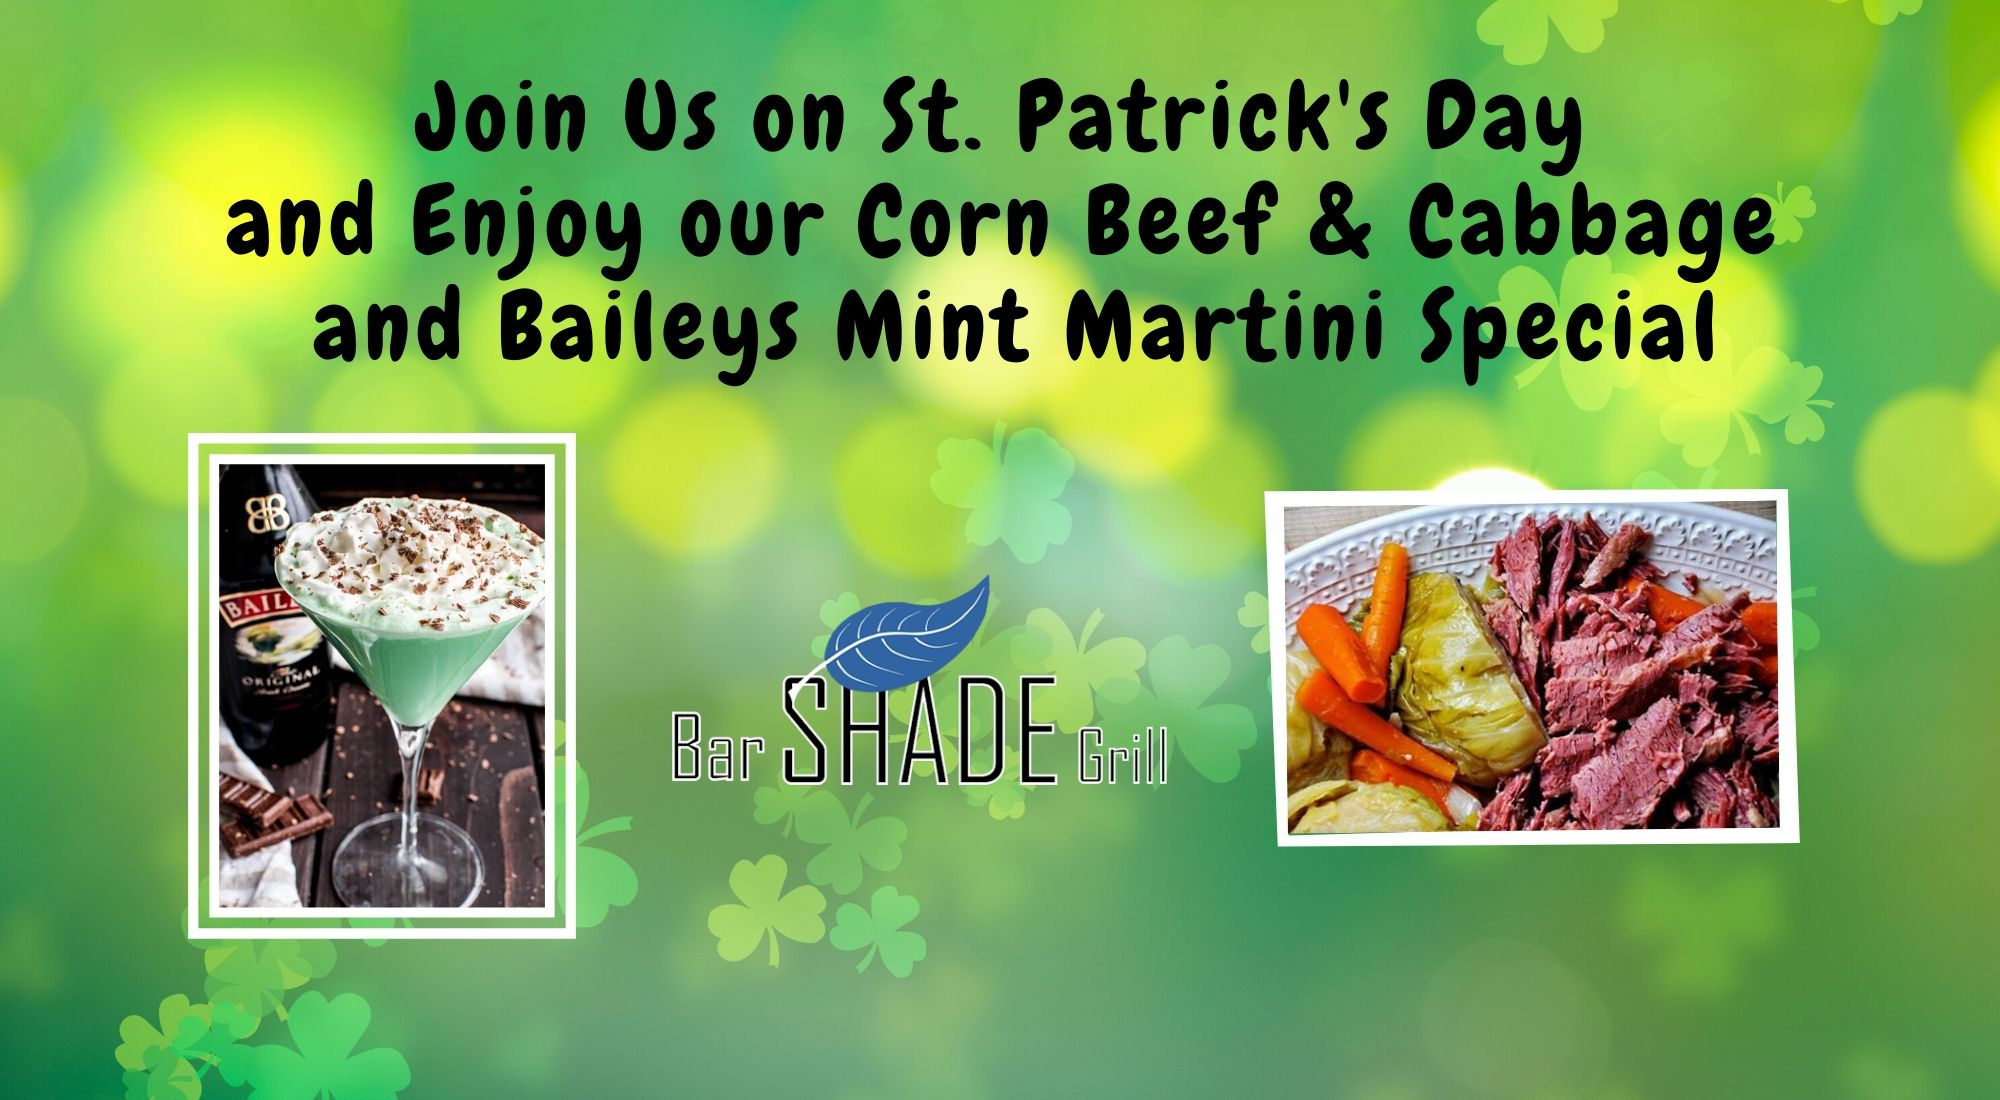 Shade Bar and Grill Windsor Locks CT - Join us on St. Patrick's Day